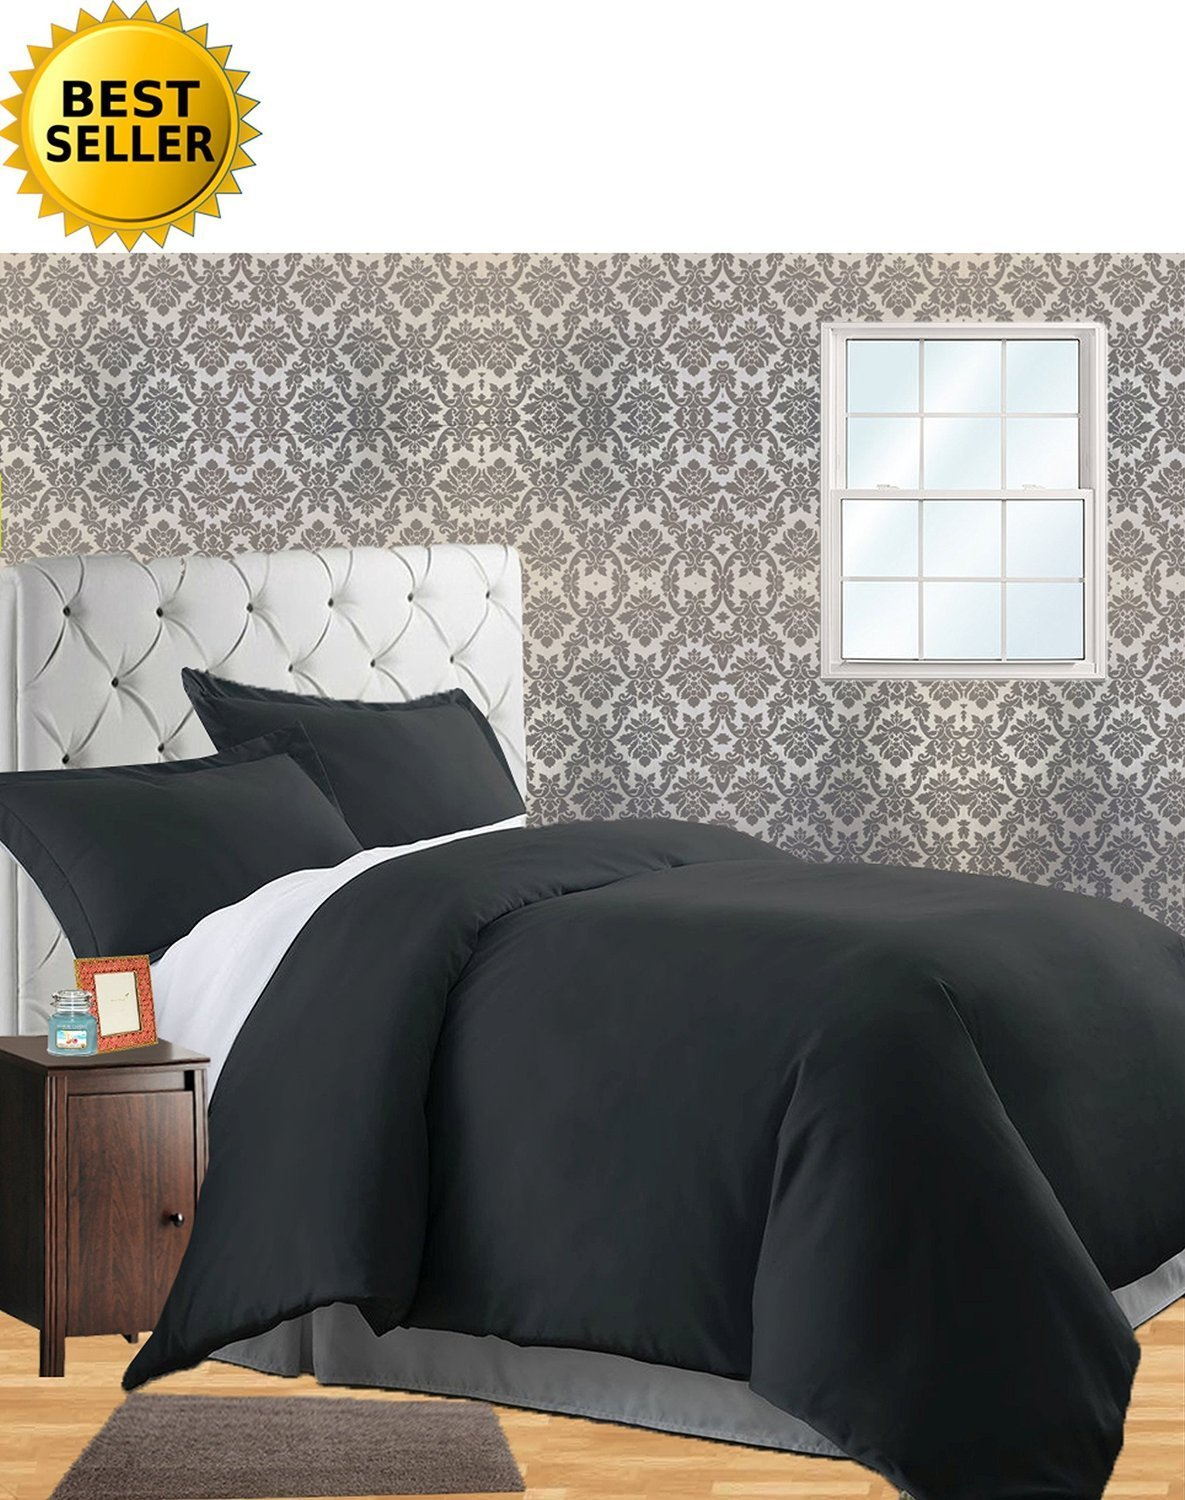 3-Piece Duvet Cover Set